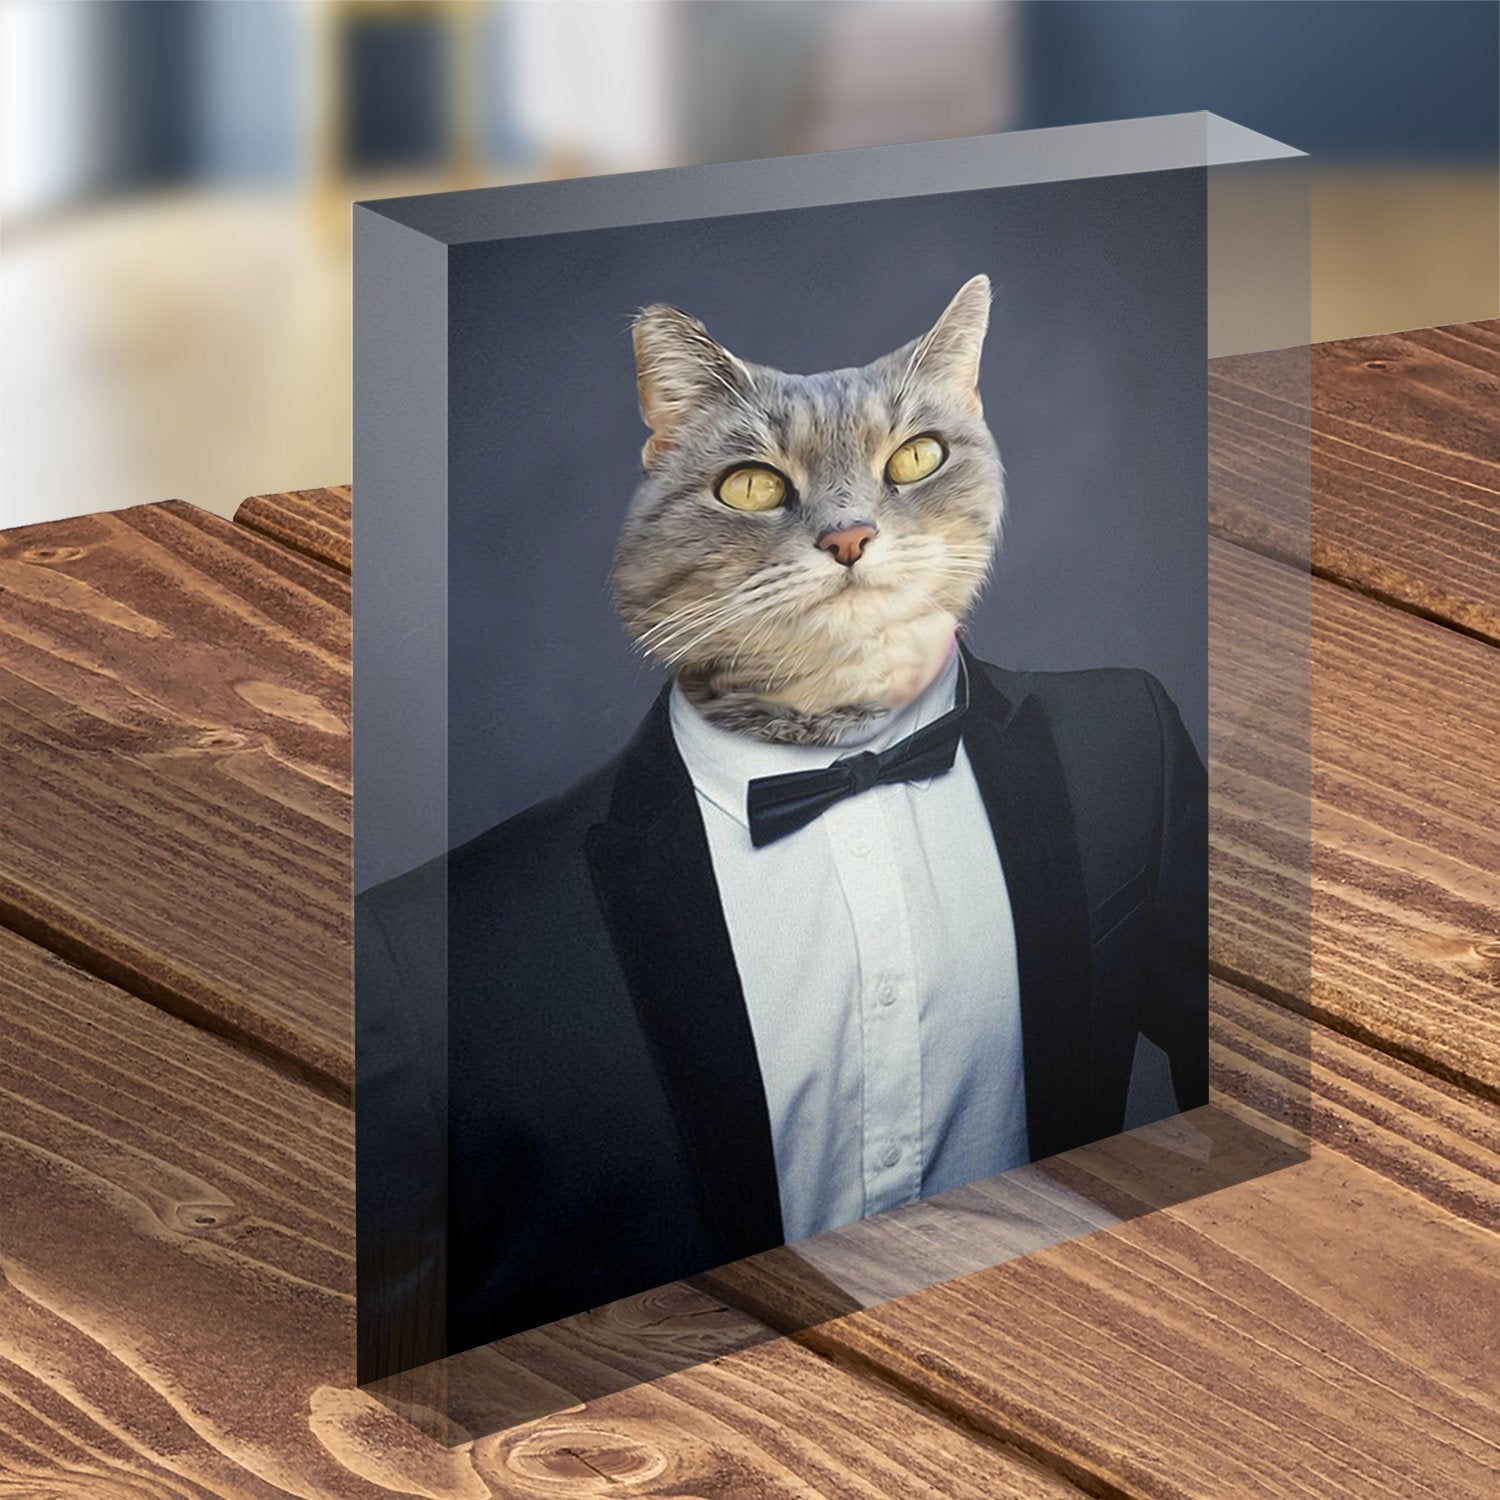 Bow Tie - Custom Pet Portrait - Acrylic Photo Display Block - Fair Dinkum Fashion